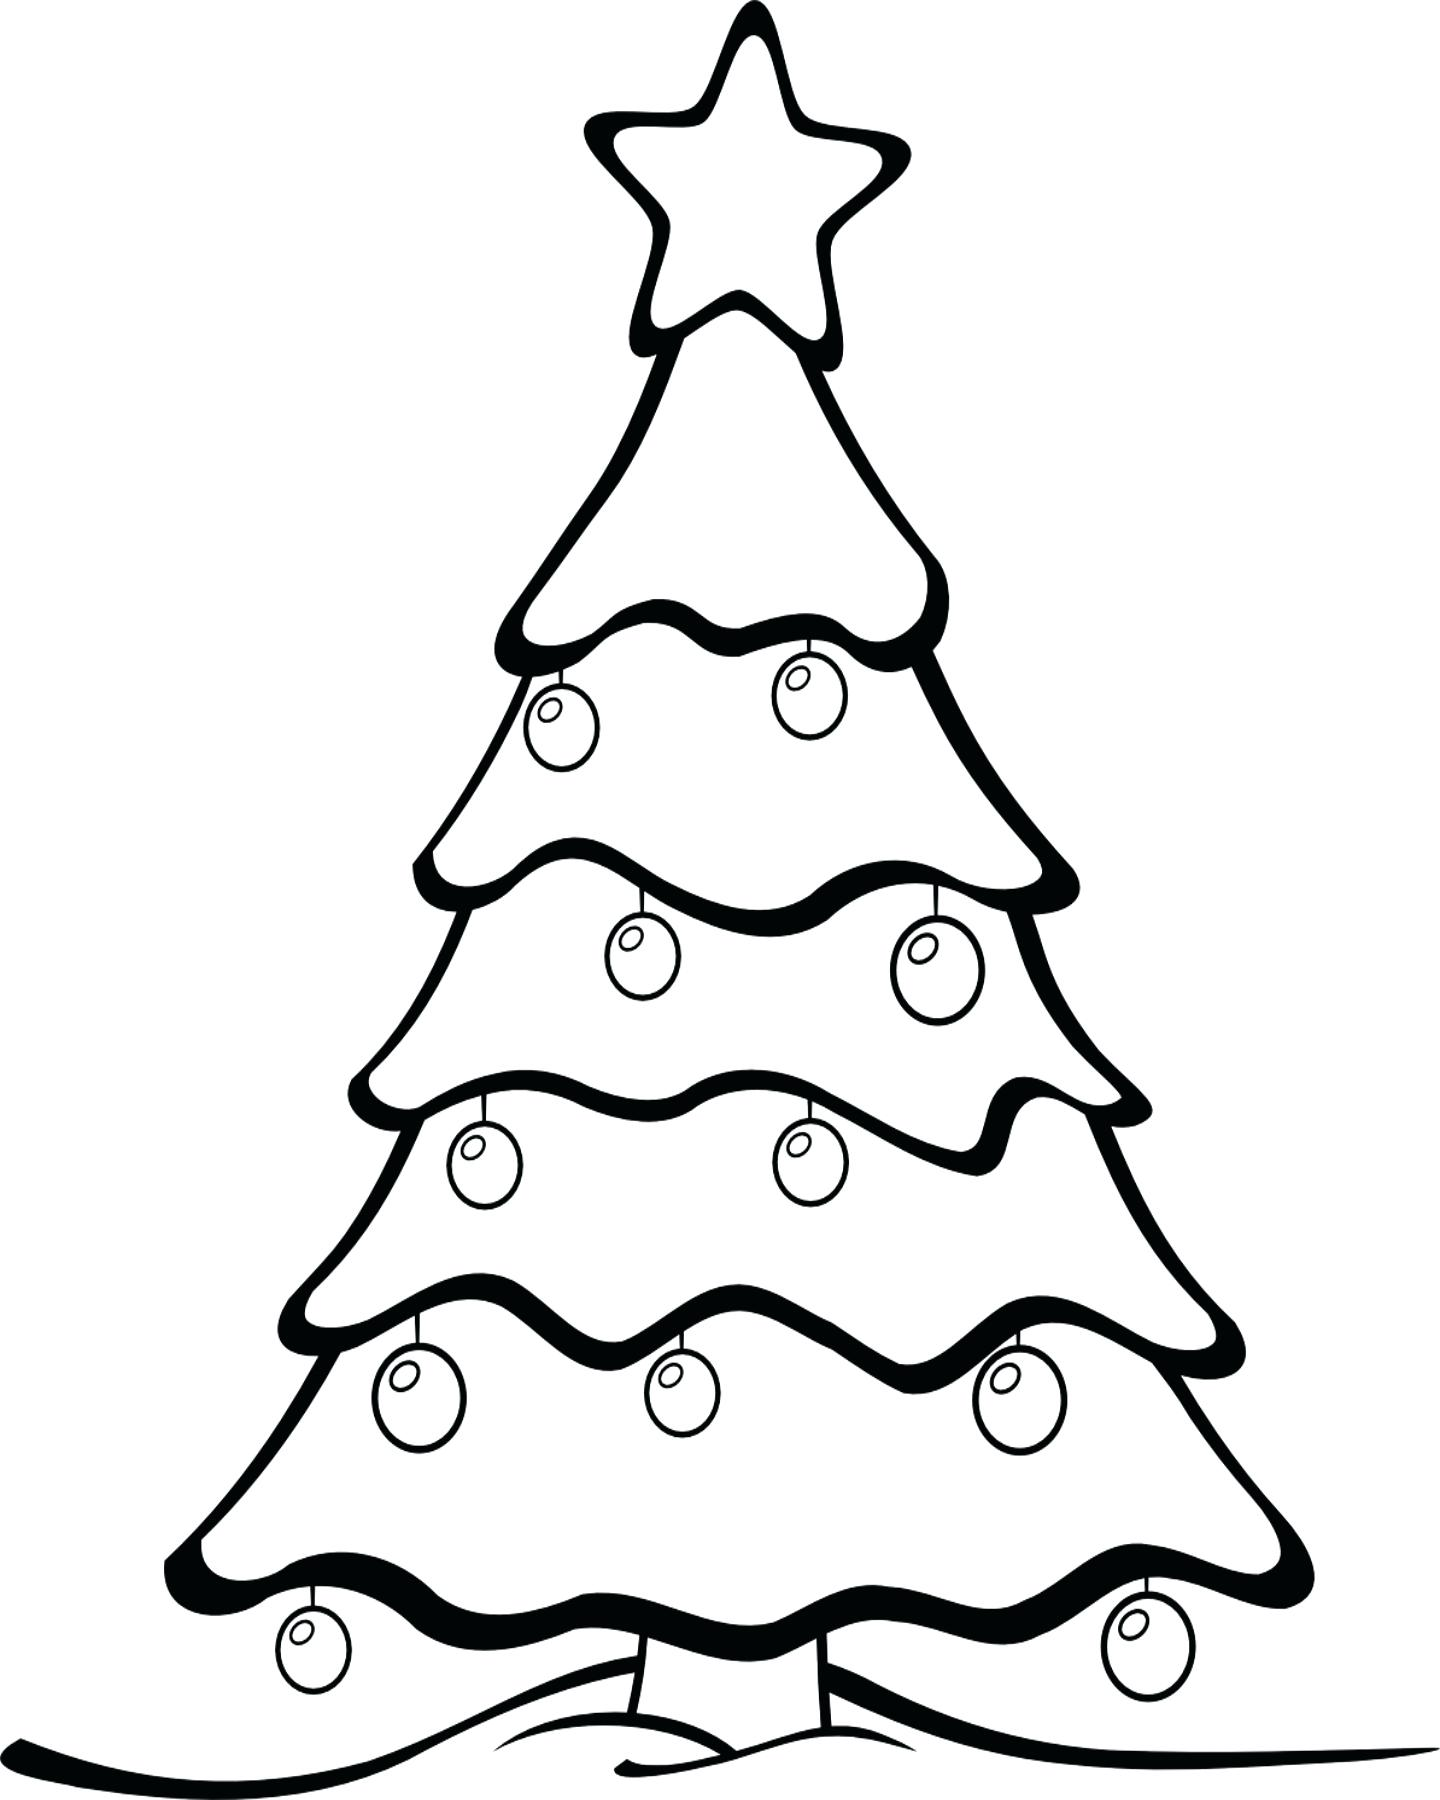 1440x1800 Coloring Coloring Pages Christmas Tree Ornaments Holiday Page